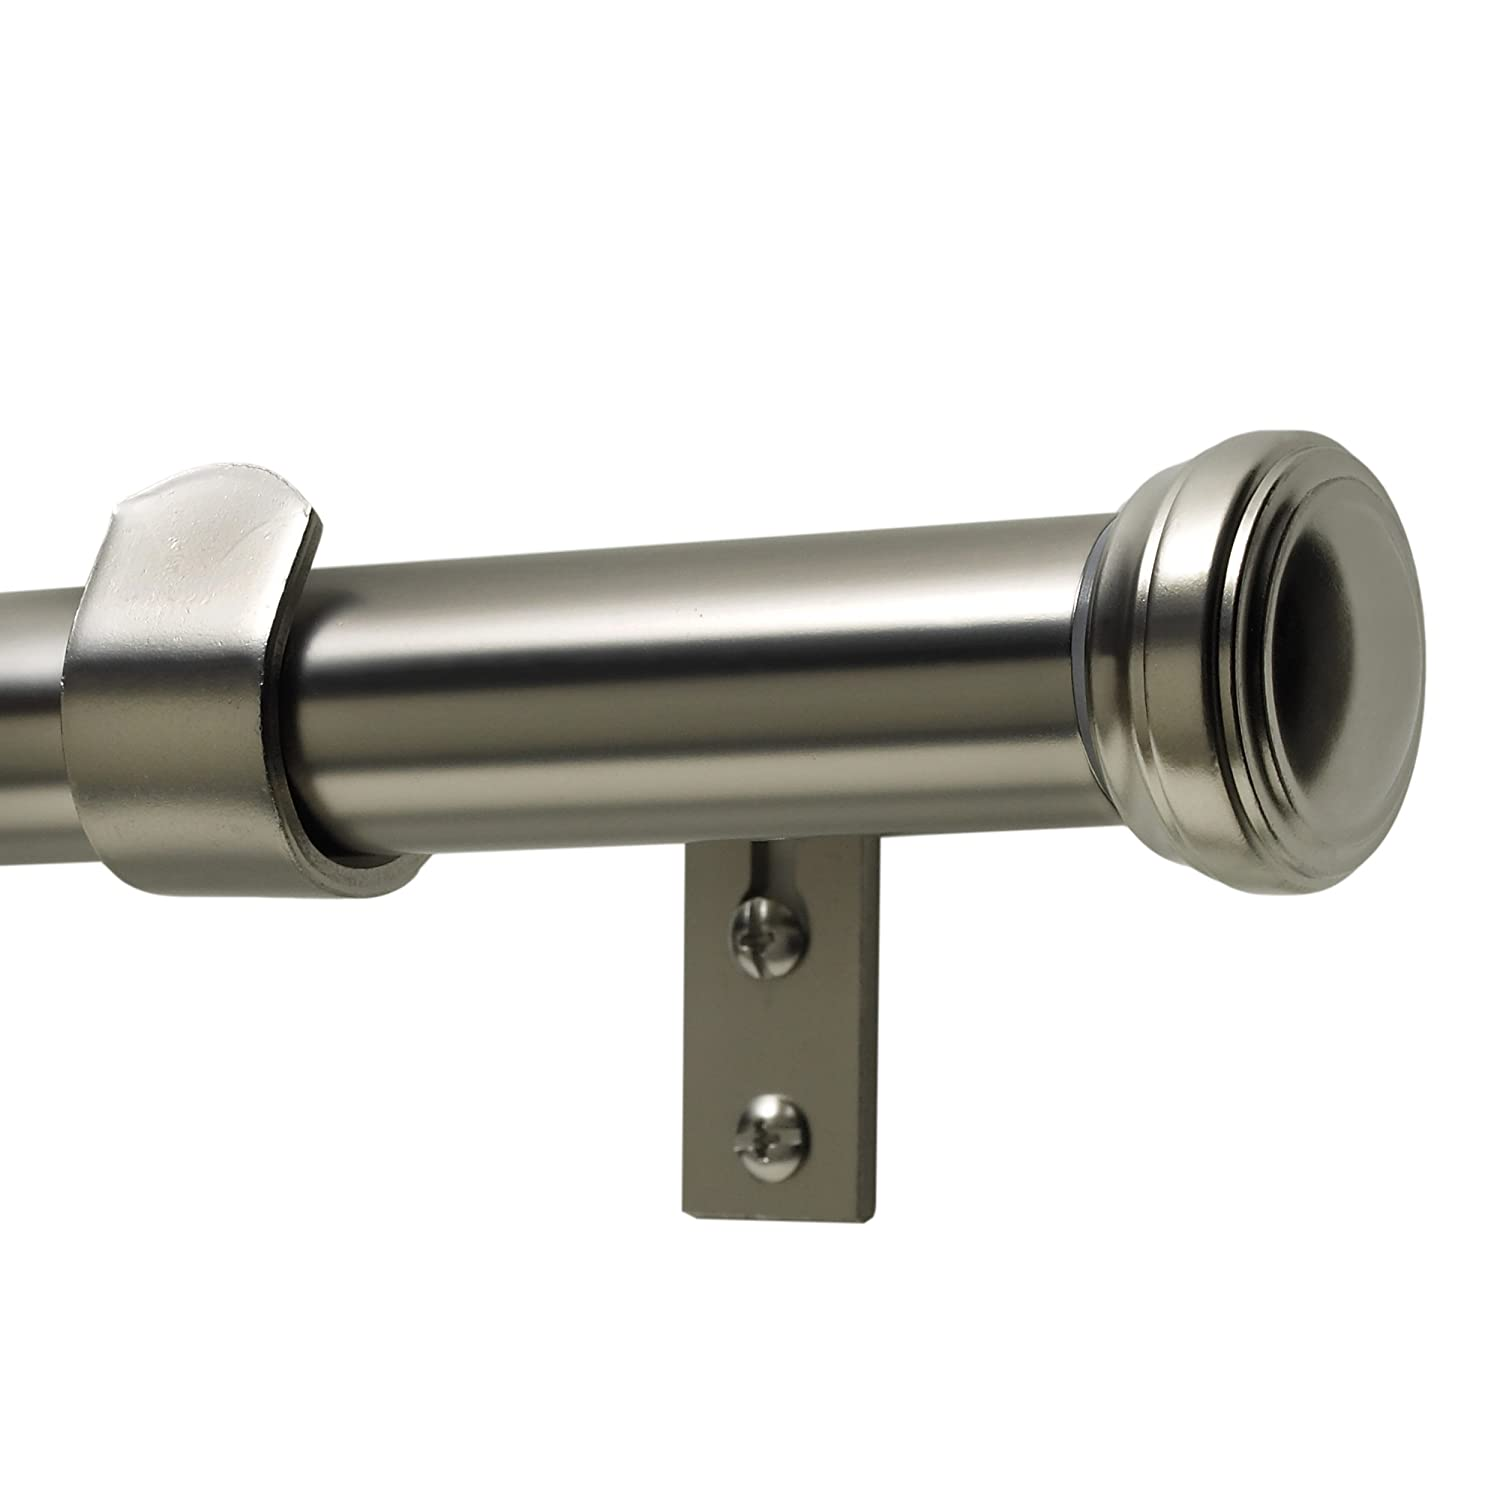 Kenney 54545012 Fluted End Cap Rod Set, 36 To 66 Inch Width, 1 Inch  Diameter, Satin Nickel   Window Treatment Hardware   Amazon.com